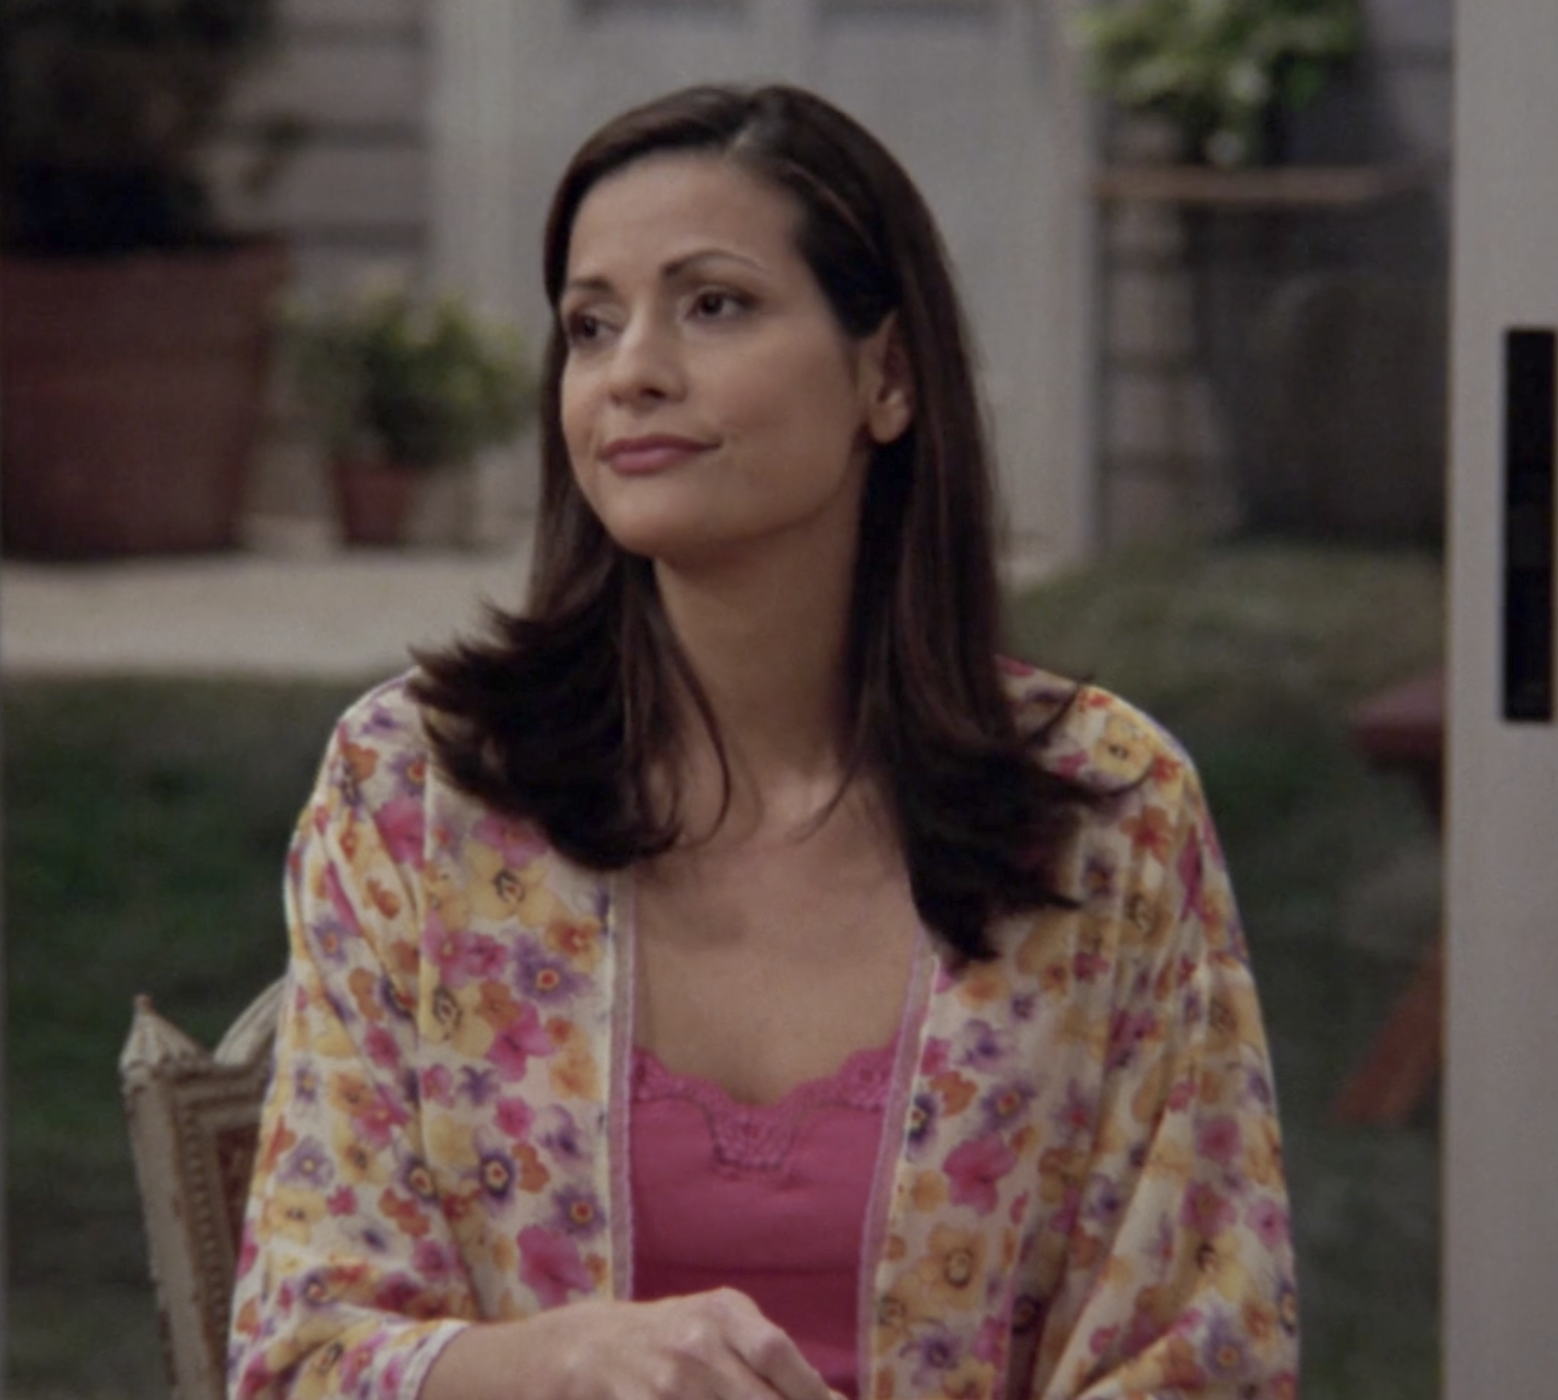 Angie Lopez in The George Lopez Show